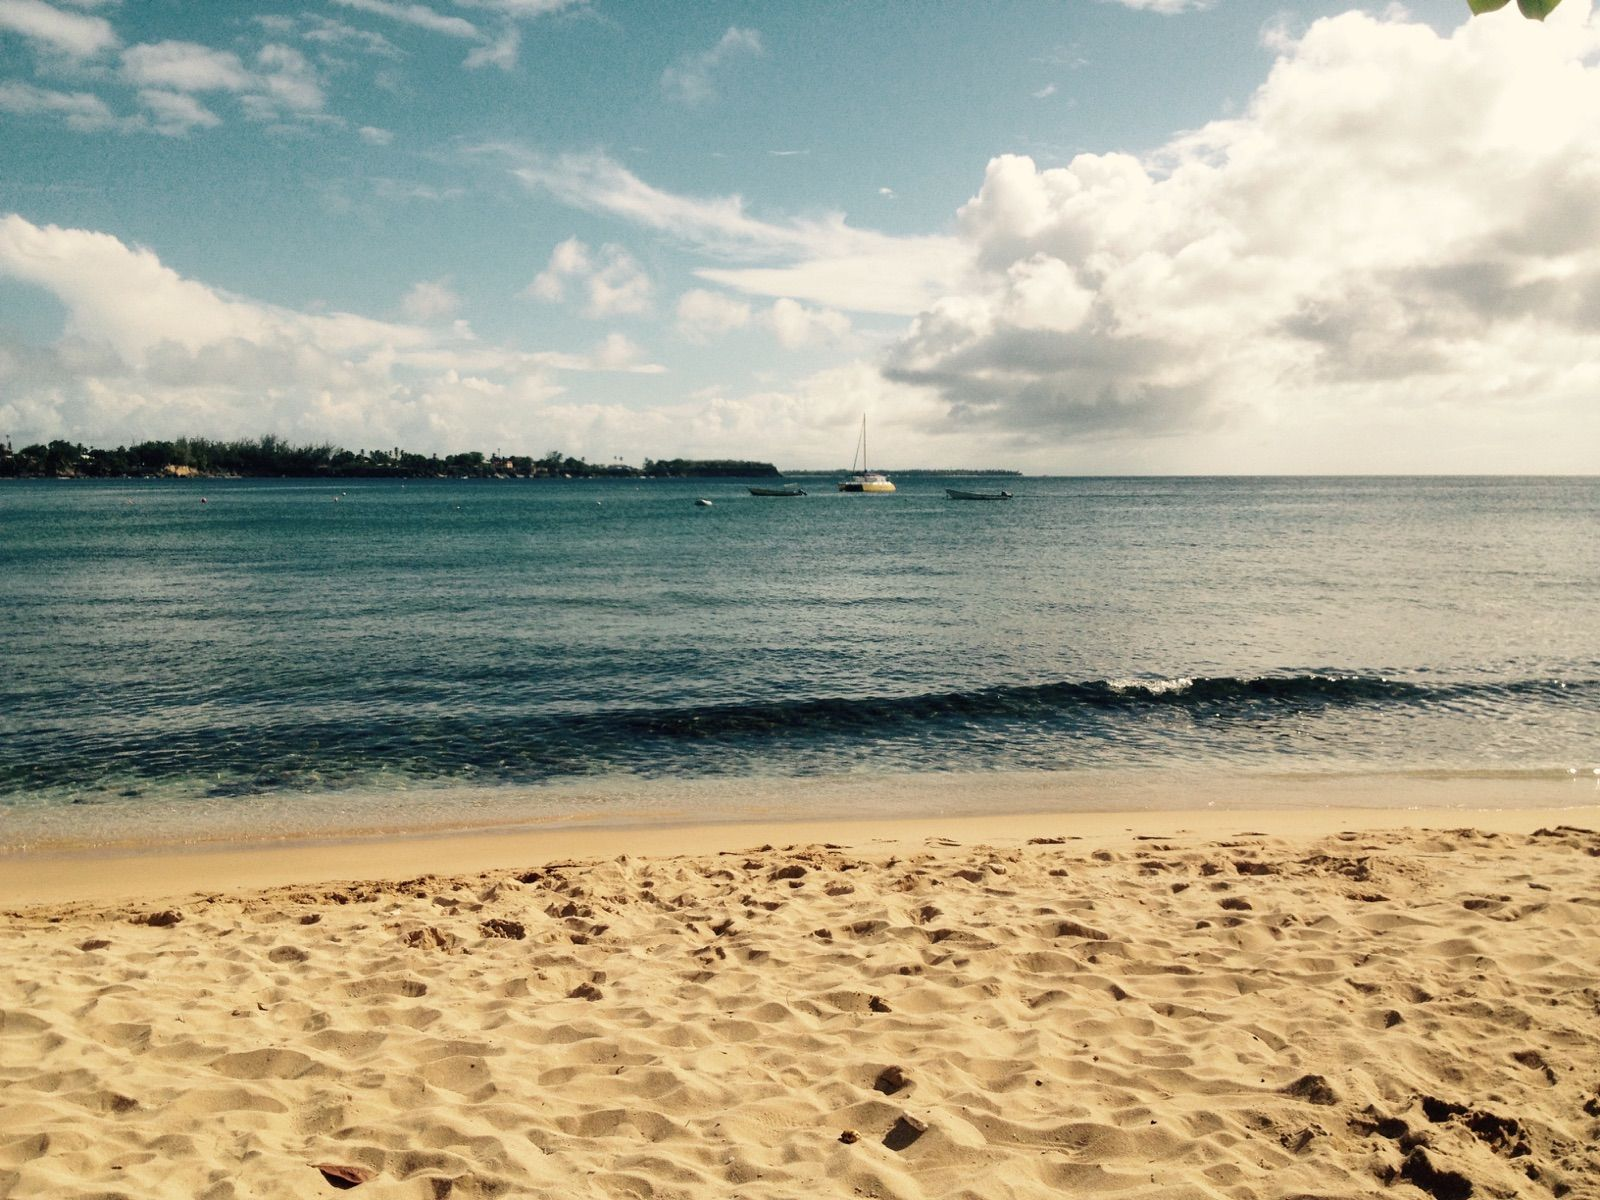 Store bay Beach Tobago beautiful beach perfect beach for jet skiing and tours to buccoo reef and nylon pool